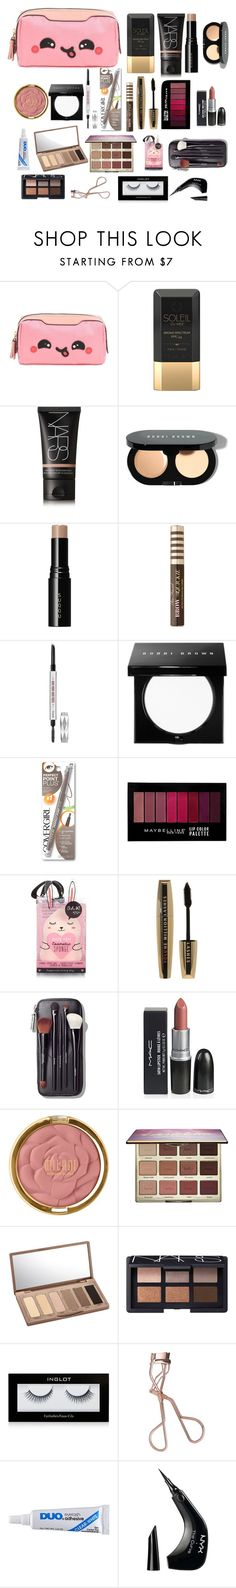 """Untitled #101"" by lauracruzsoriano-2 on Polyvore featuring beauty, Anya Hindmarch, Soleil Toujours, NARS Cosmetics, Bobbi Brown Cosmetics, SUQQU, Too Faced Cosmetics, Benefit, Maybelline and River Island"